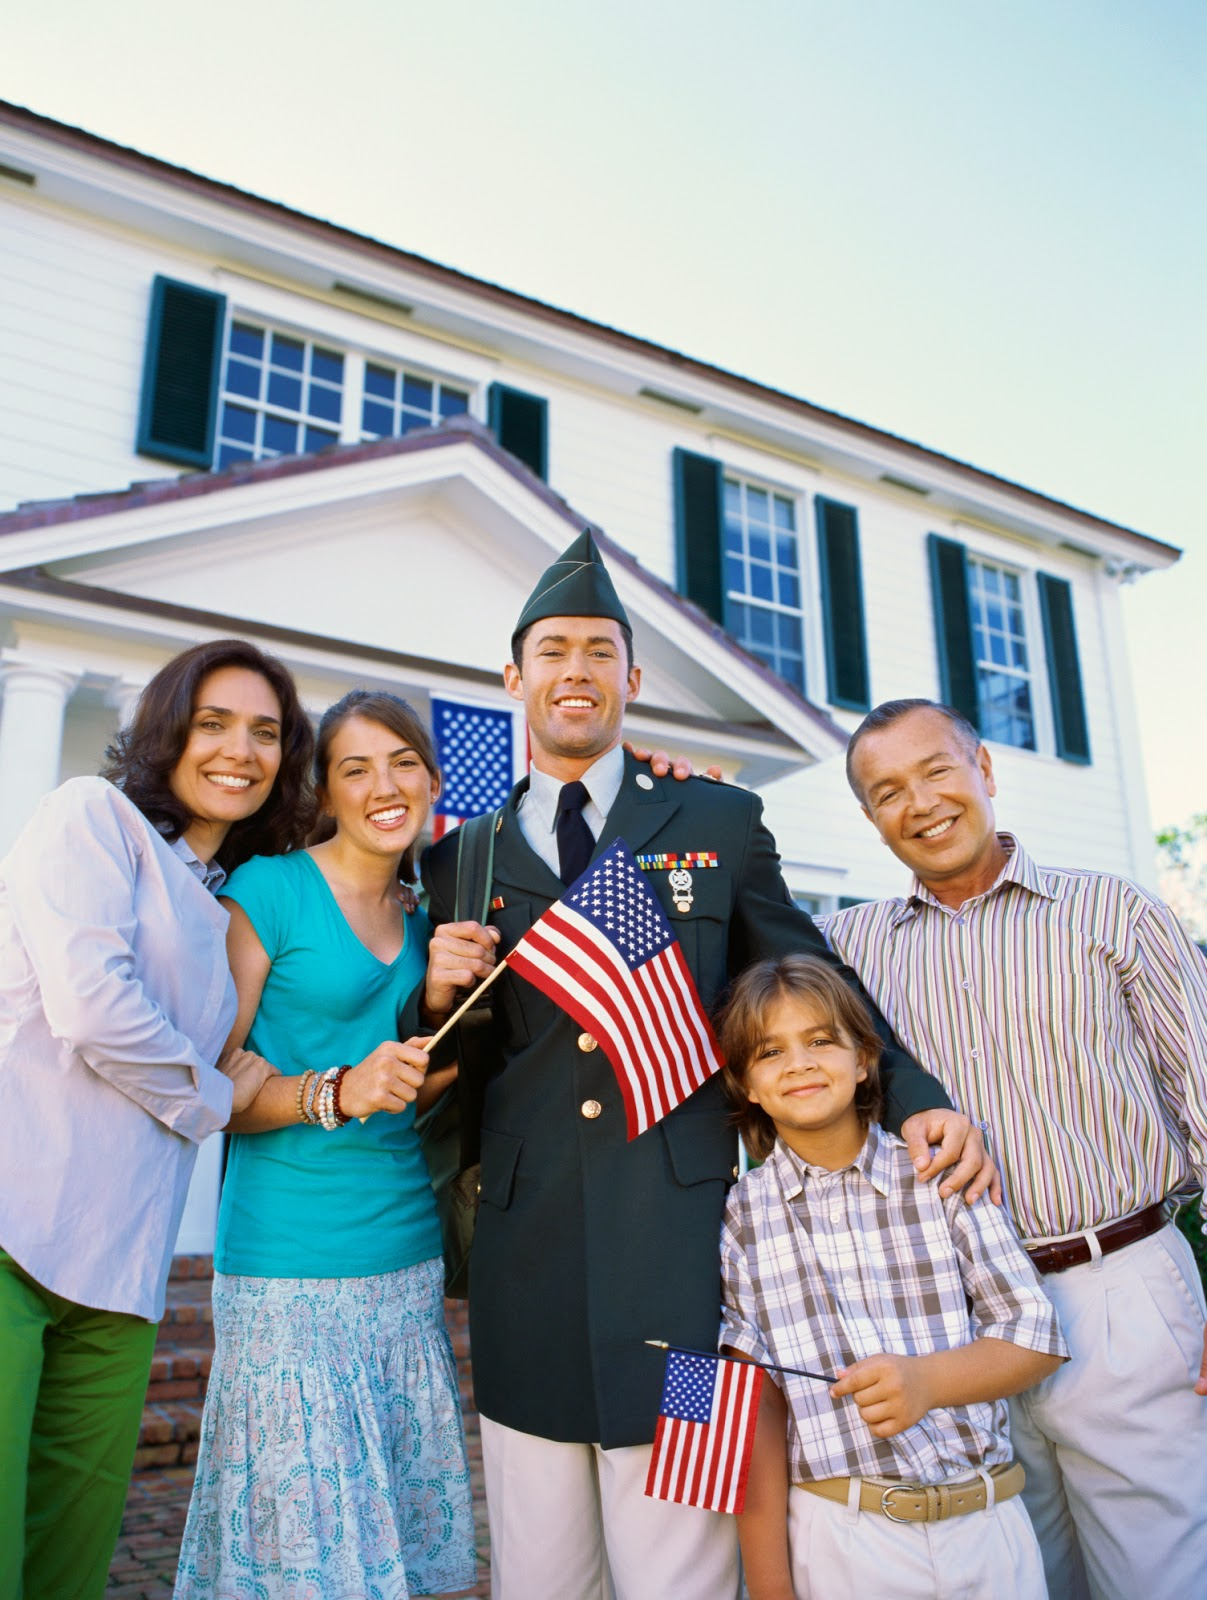 military serviceman holding flag, surrounded by family.